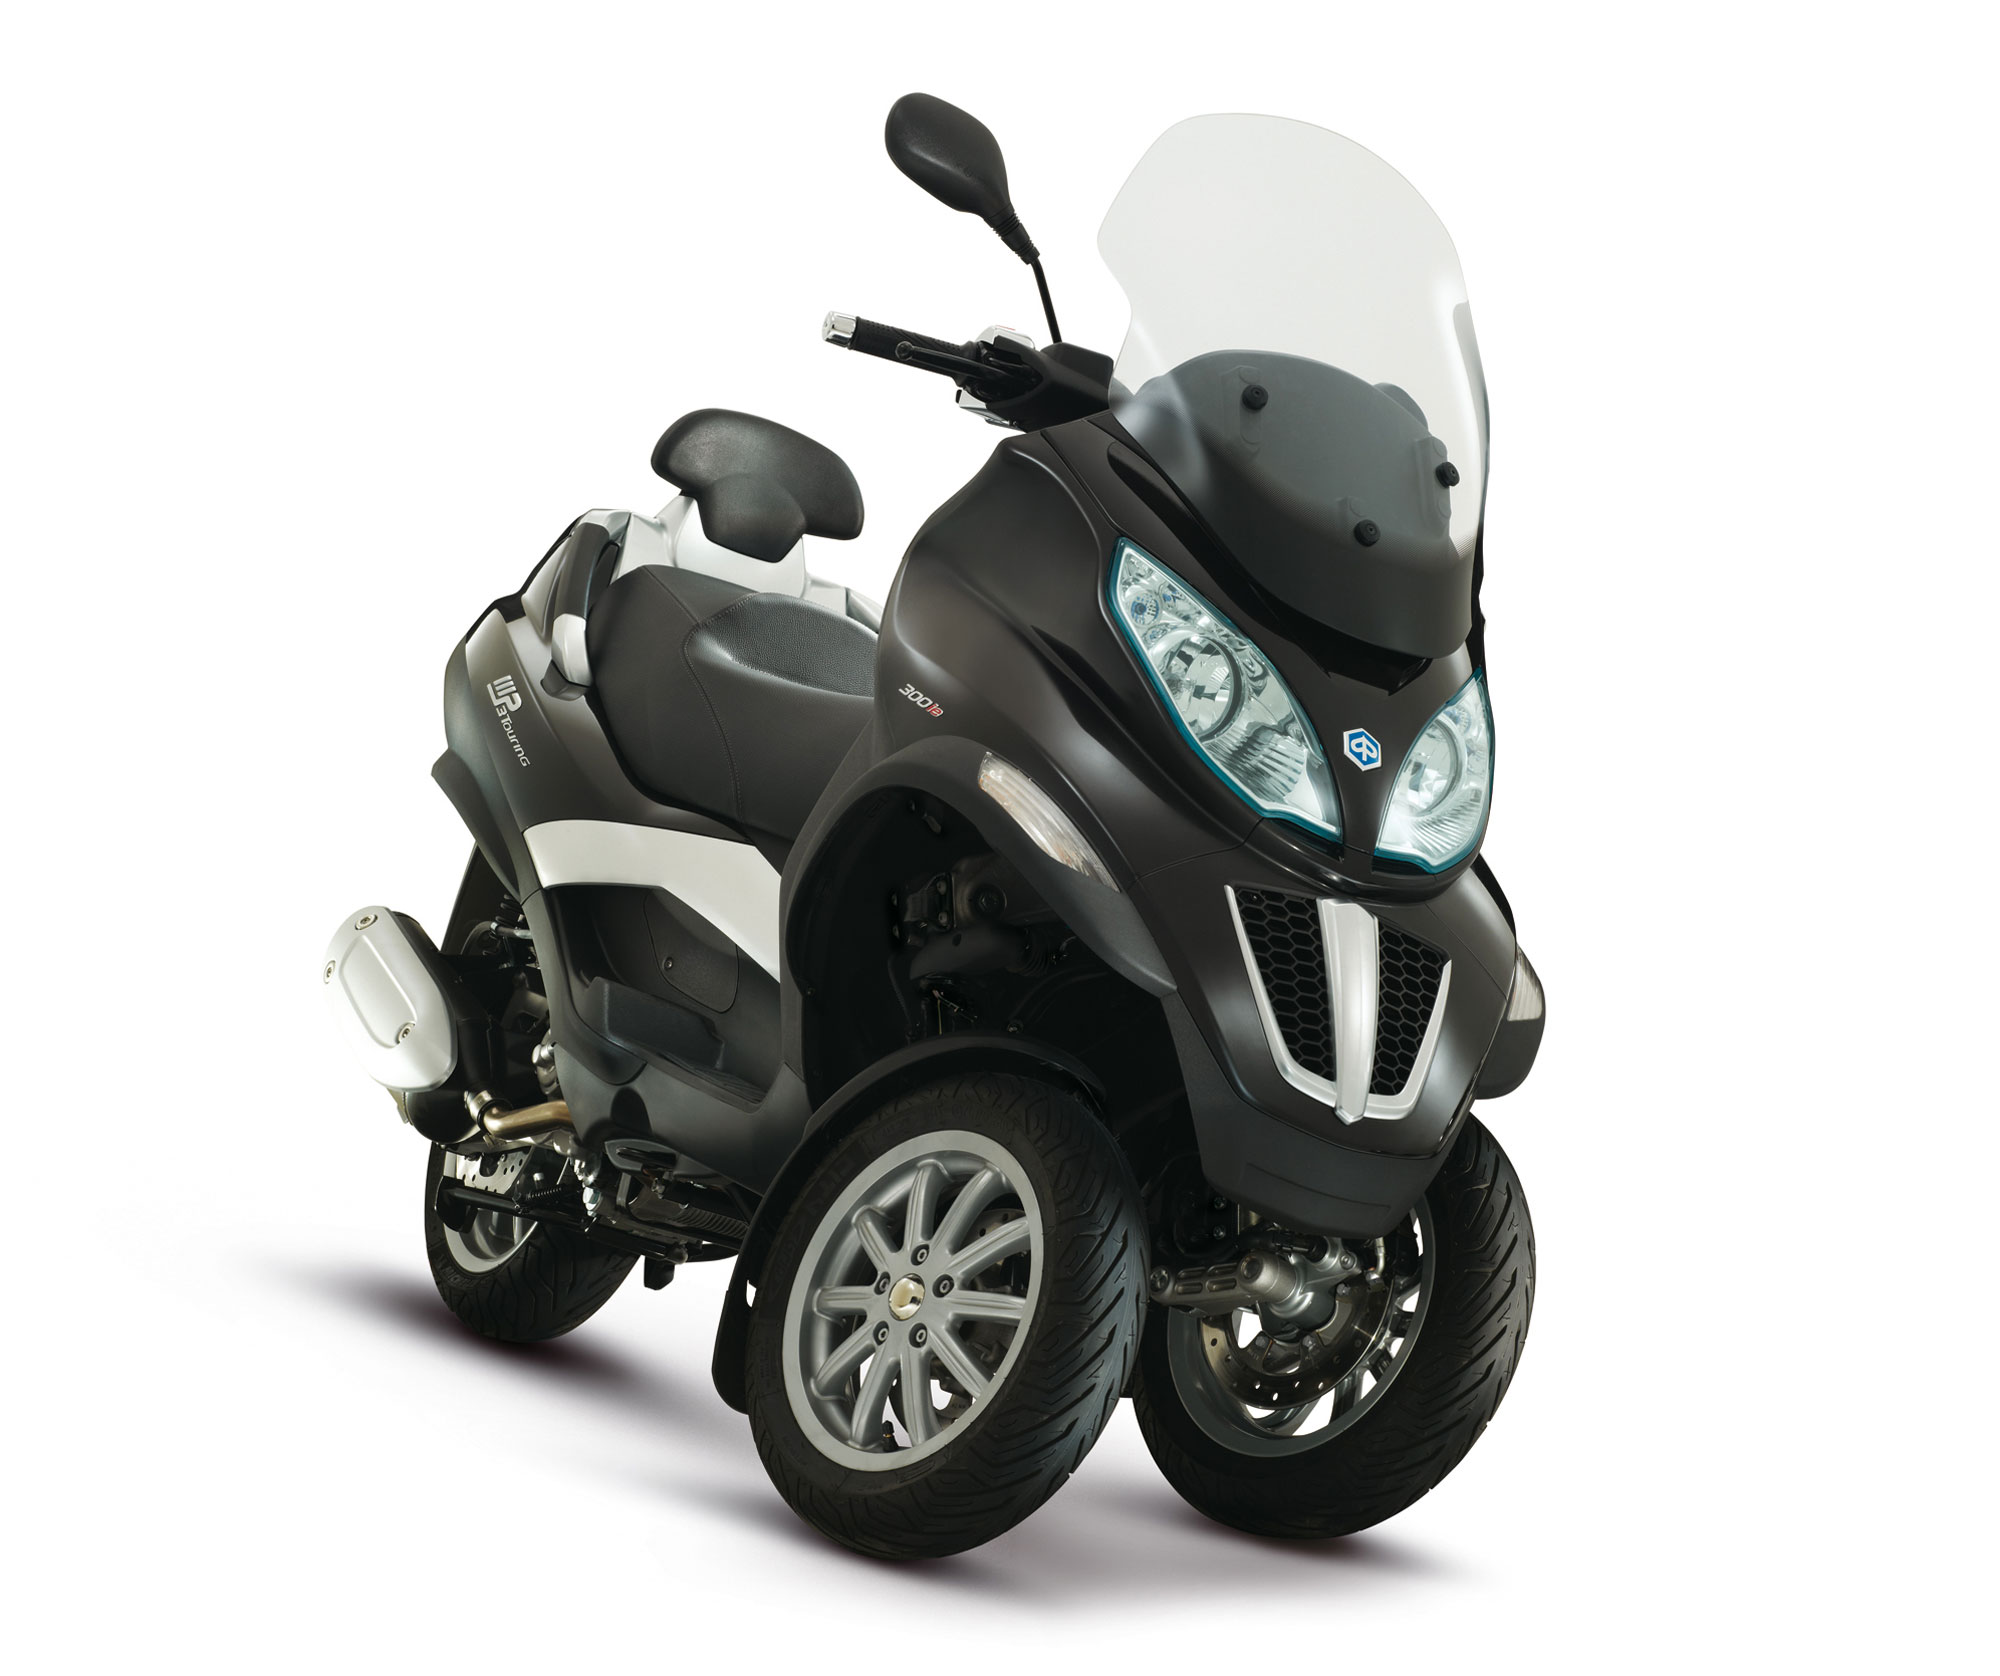 Piaggio MP3 125 Hybrid 2010 images #120243